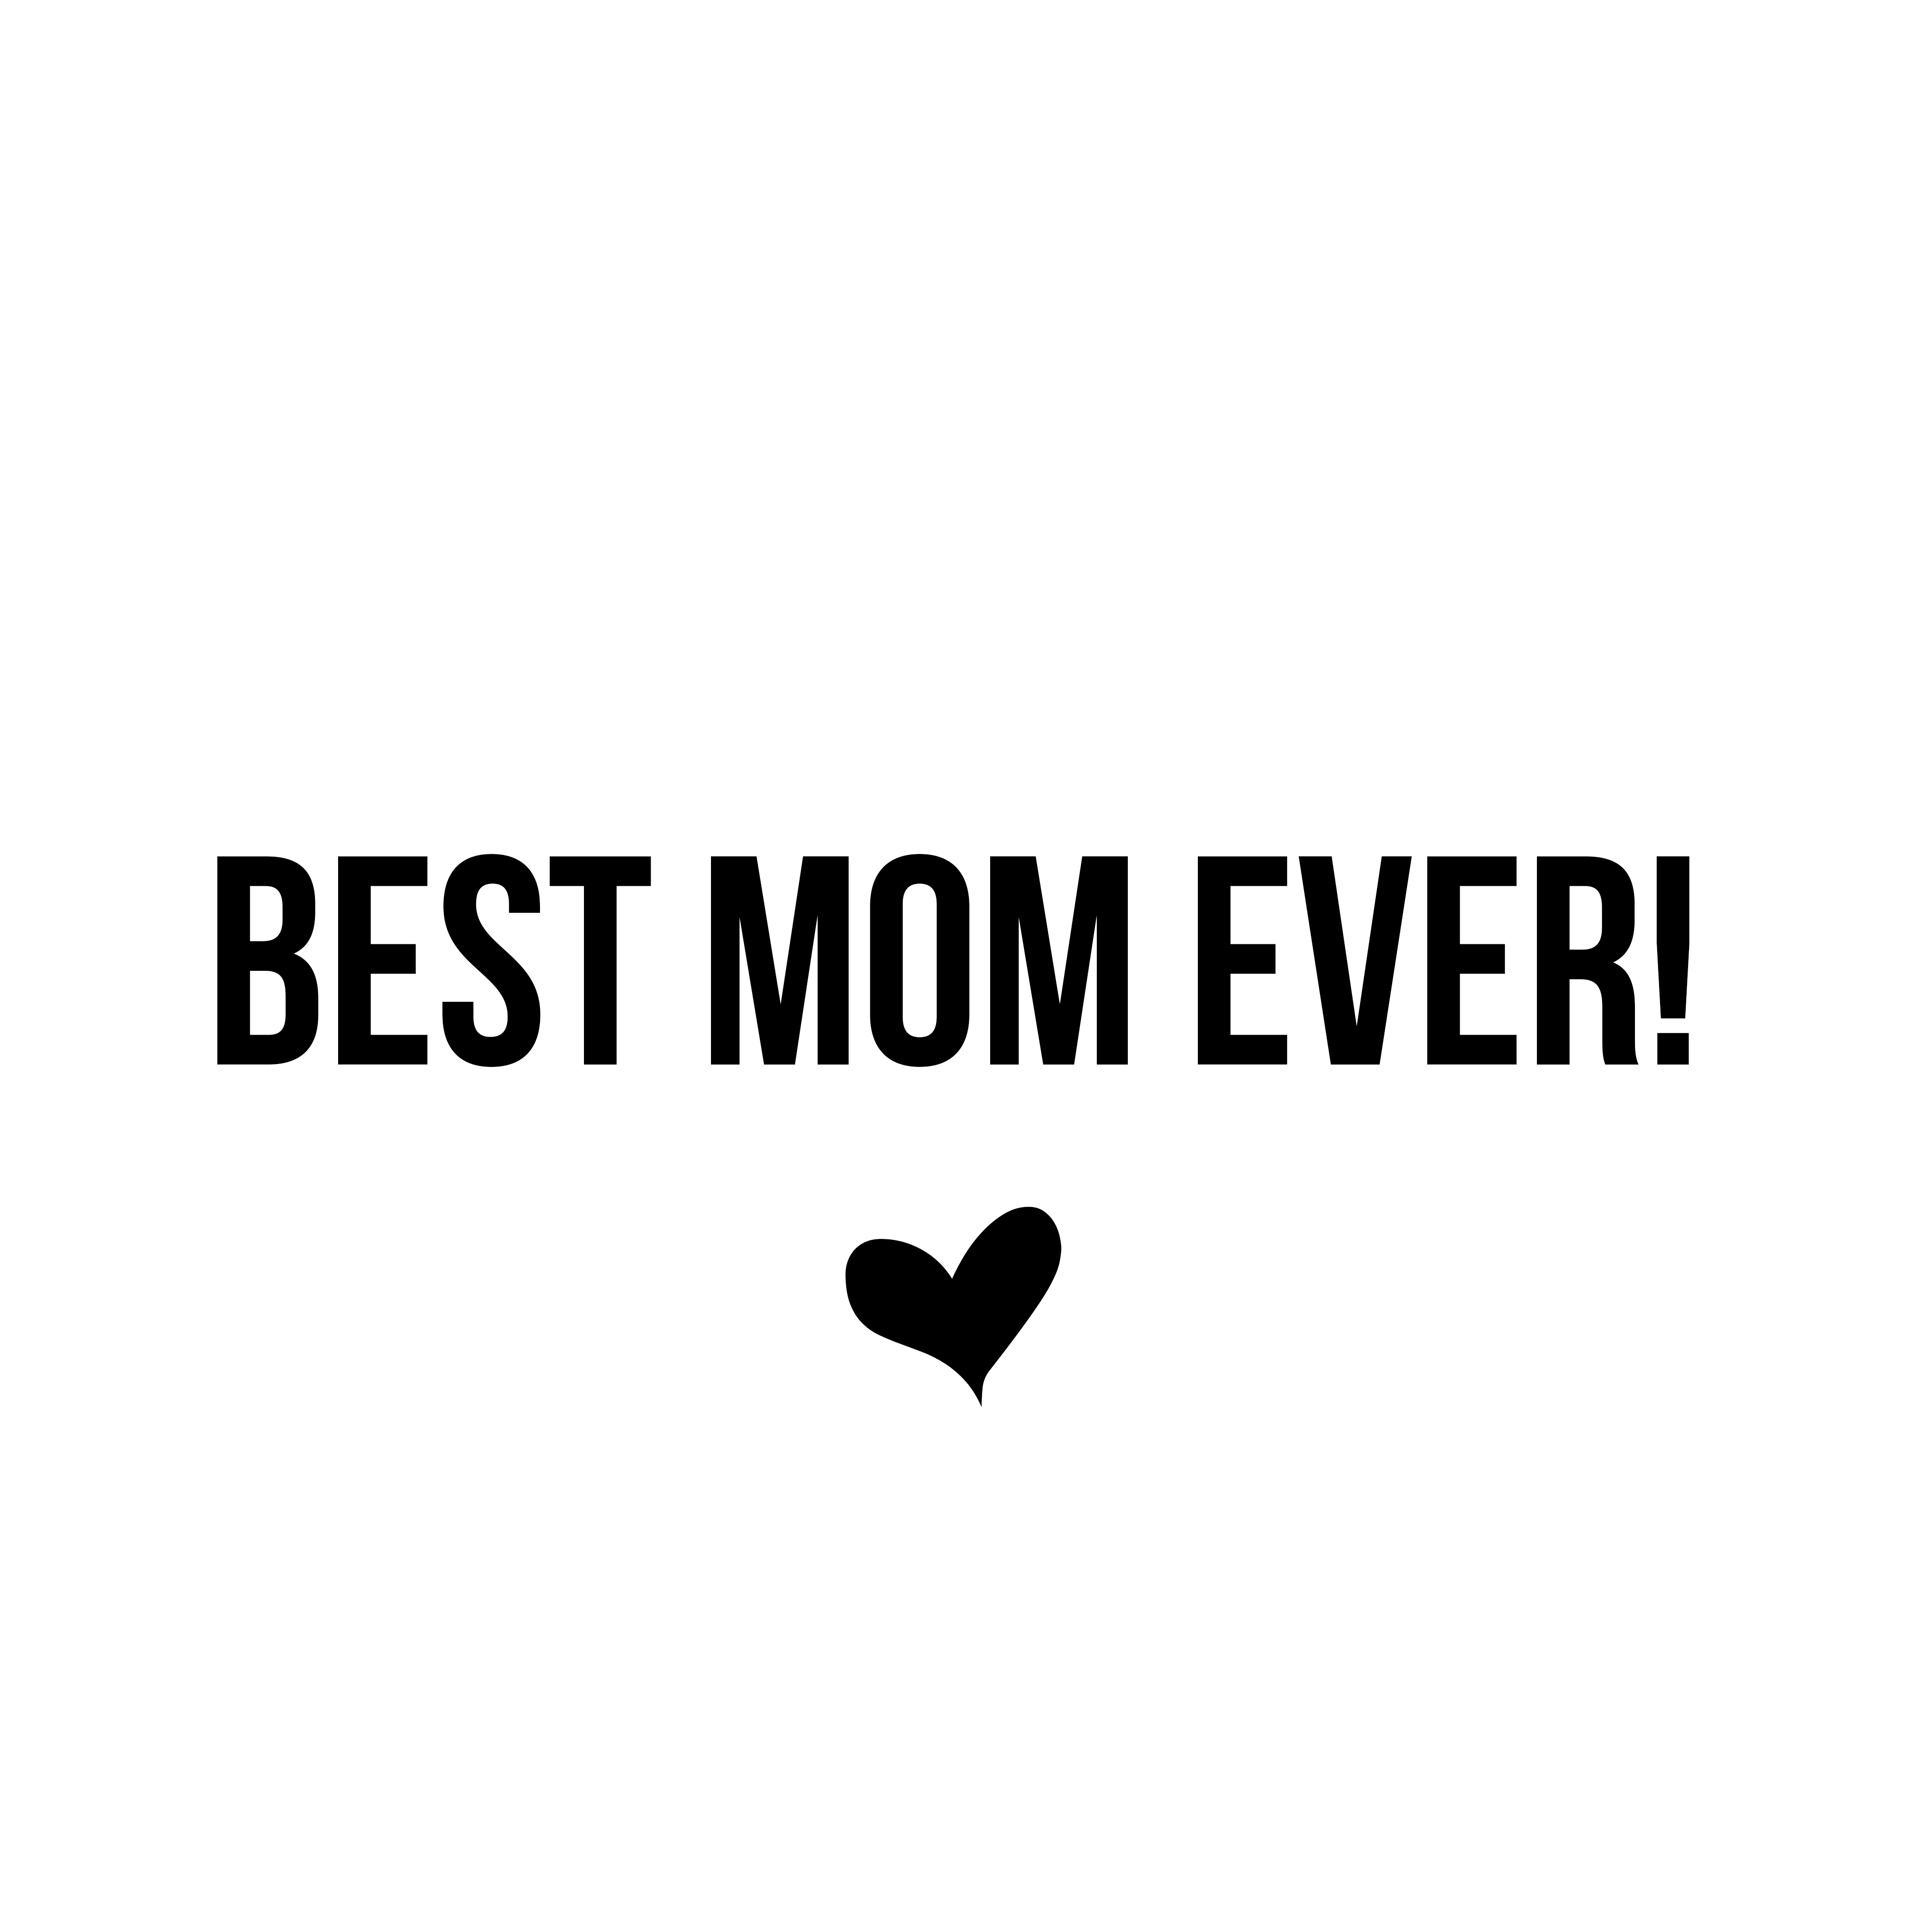 Best Mom Ever Quotes Quotes about Best mom ever (30 quotes) Best Mom Ever Quotes